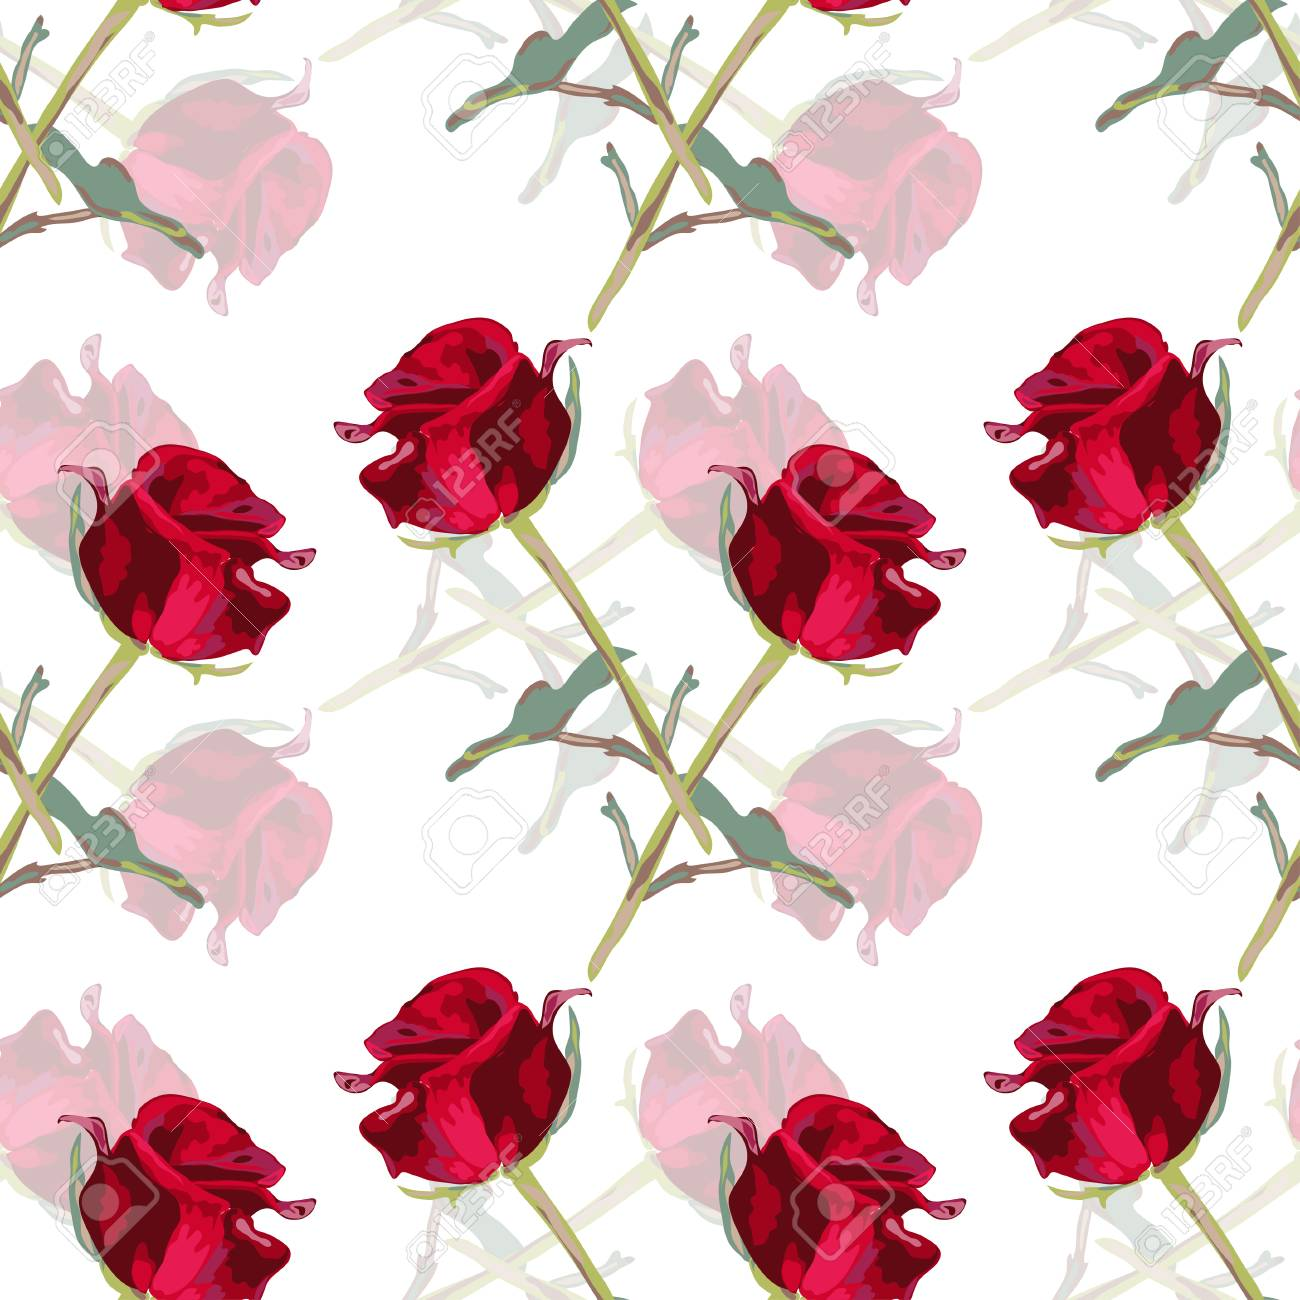 Elegant Seamless Pattern With Decorative Rose Flowers In Watercolor ...